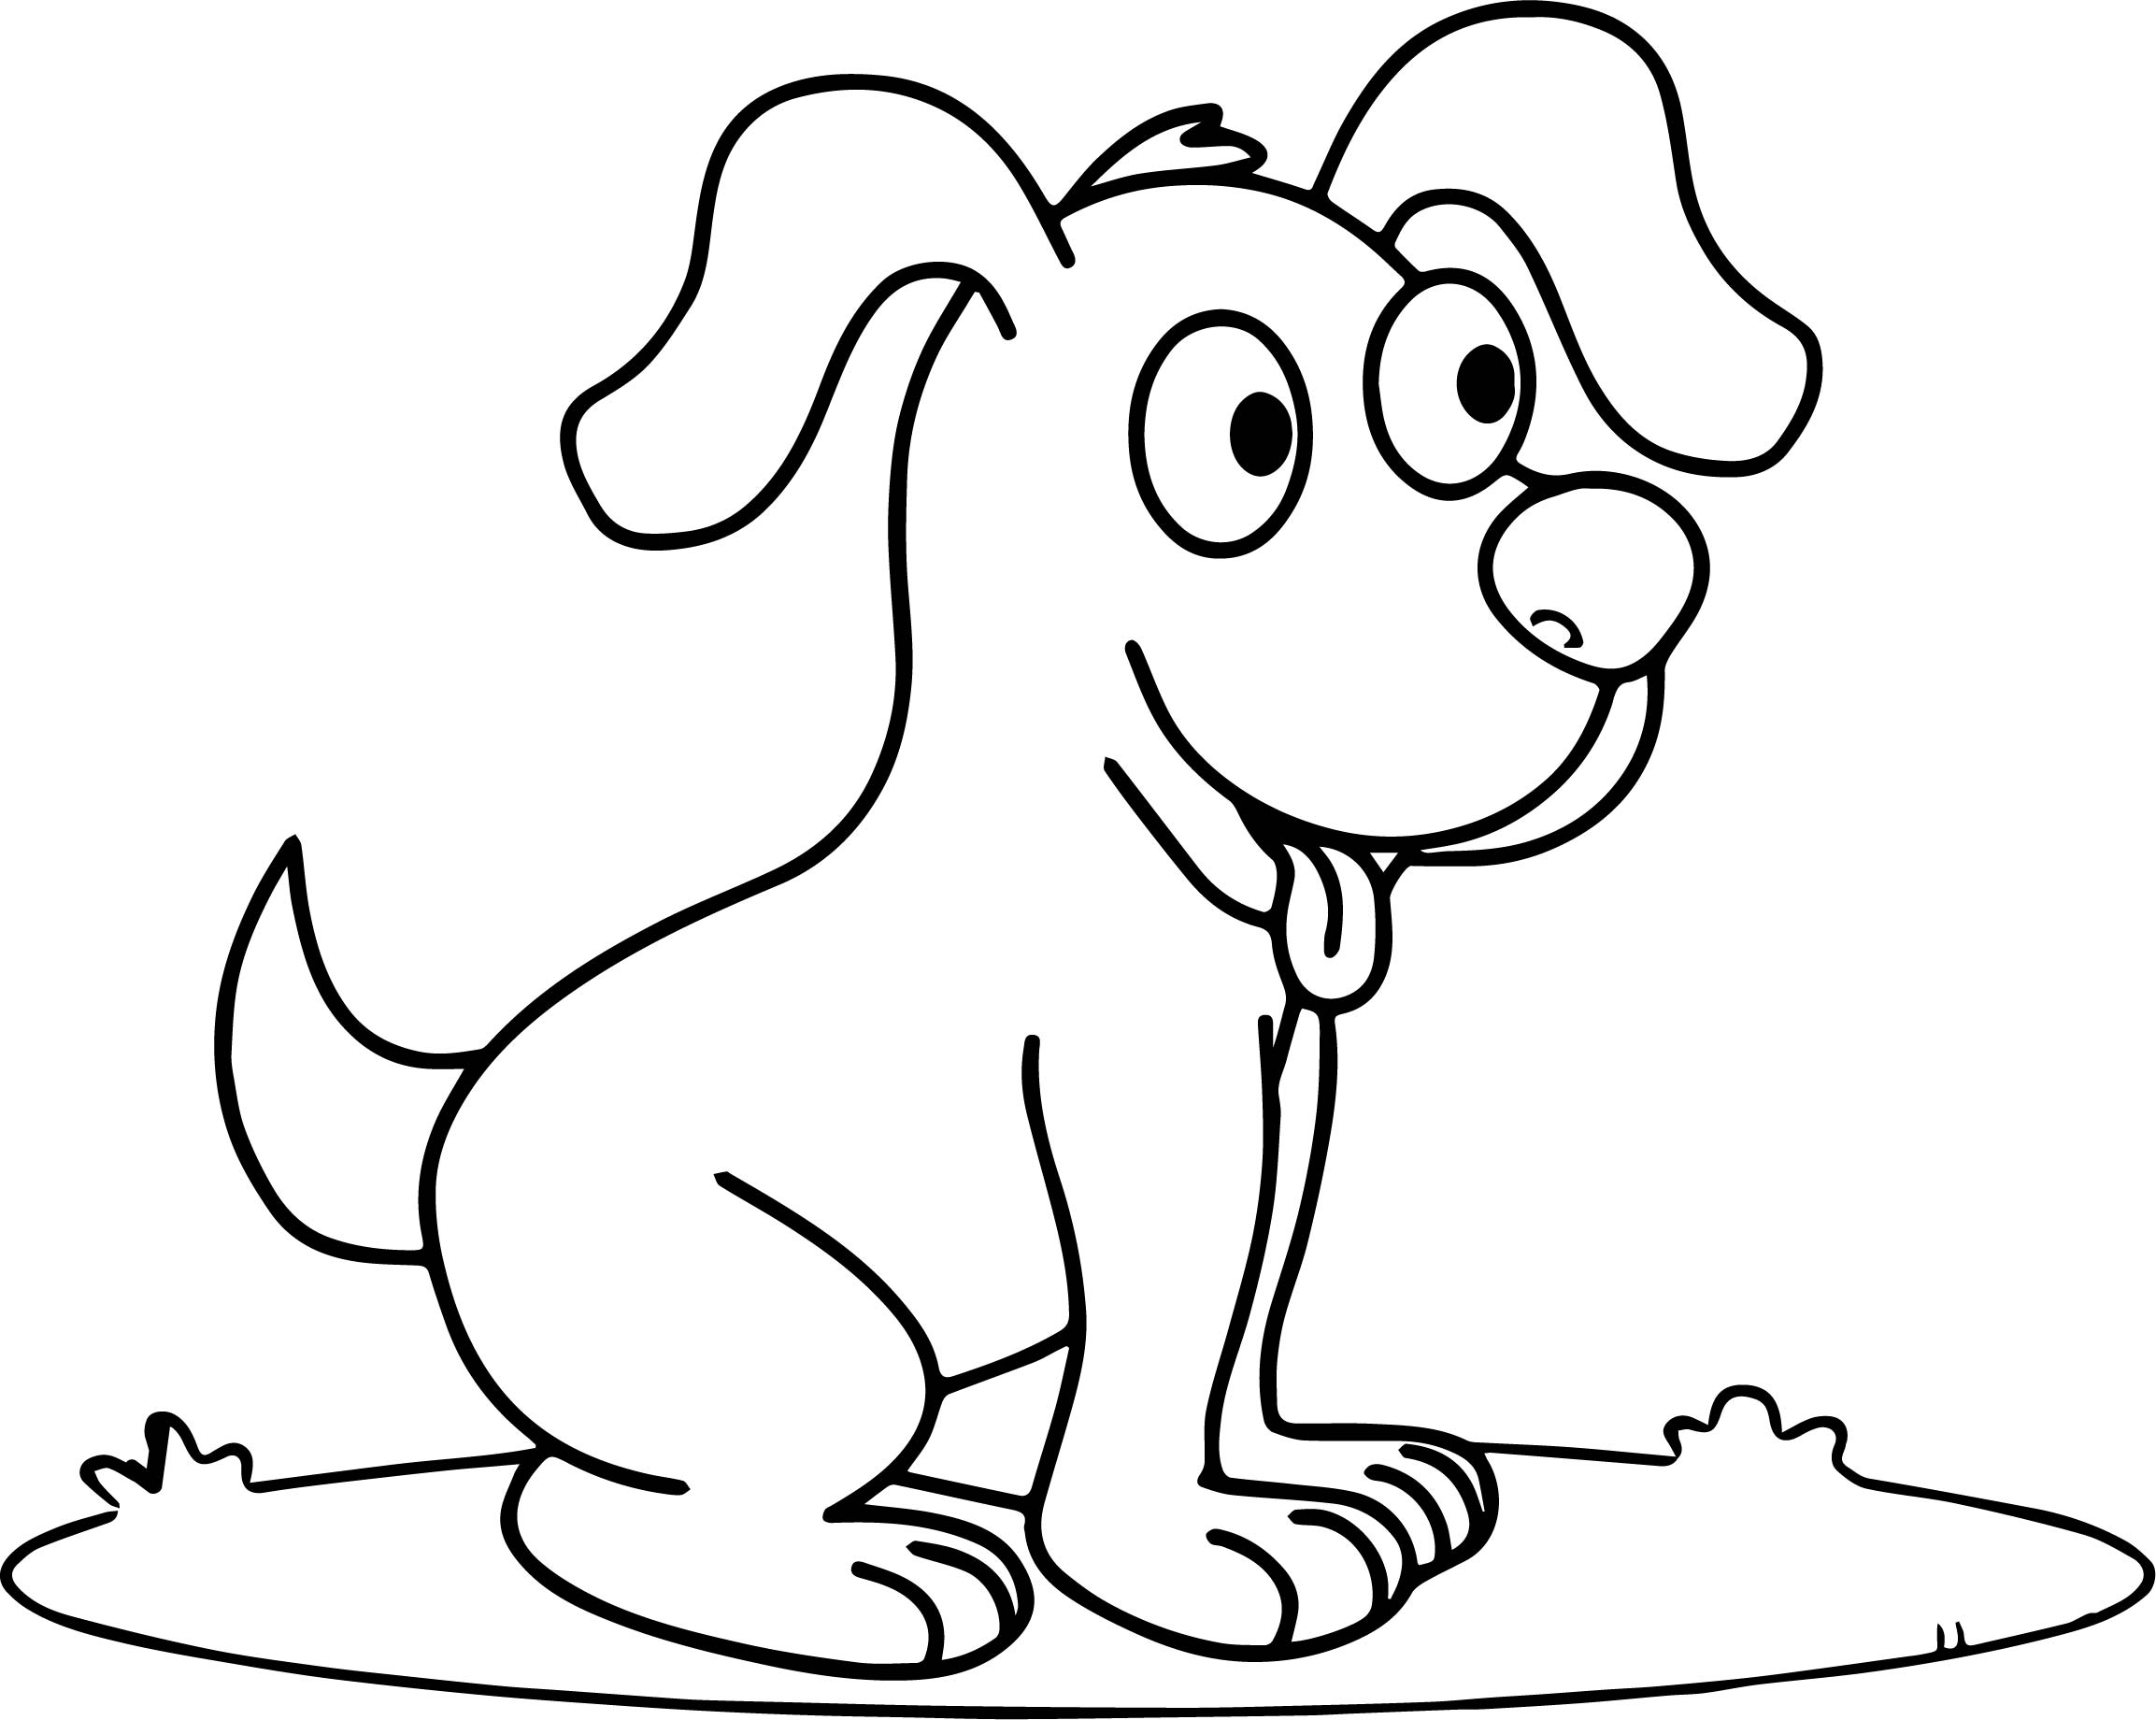 Cute happy smiling puppy puppy dog coloring page for Coloring pages of dogs